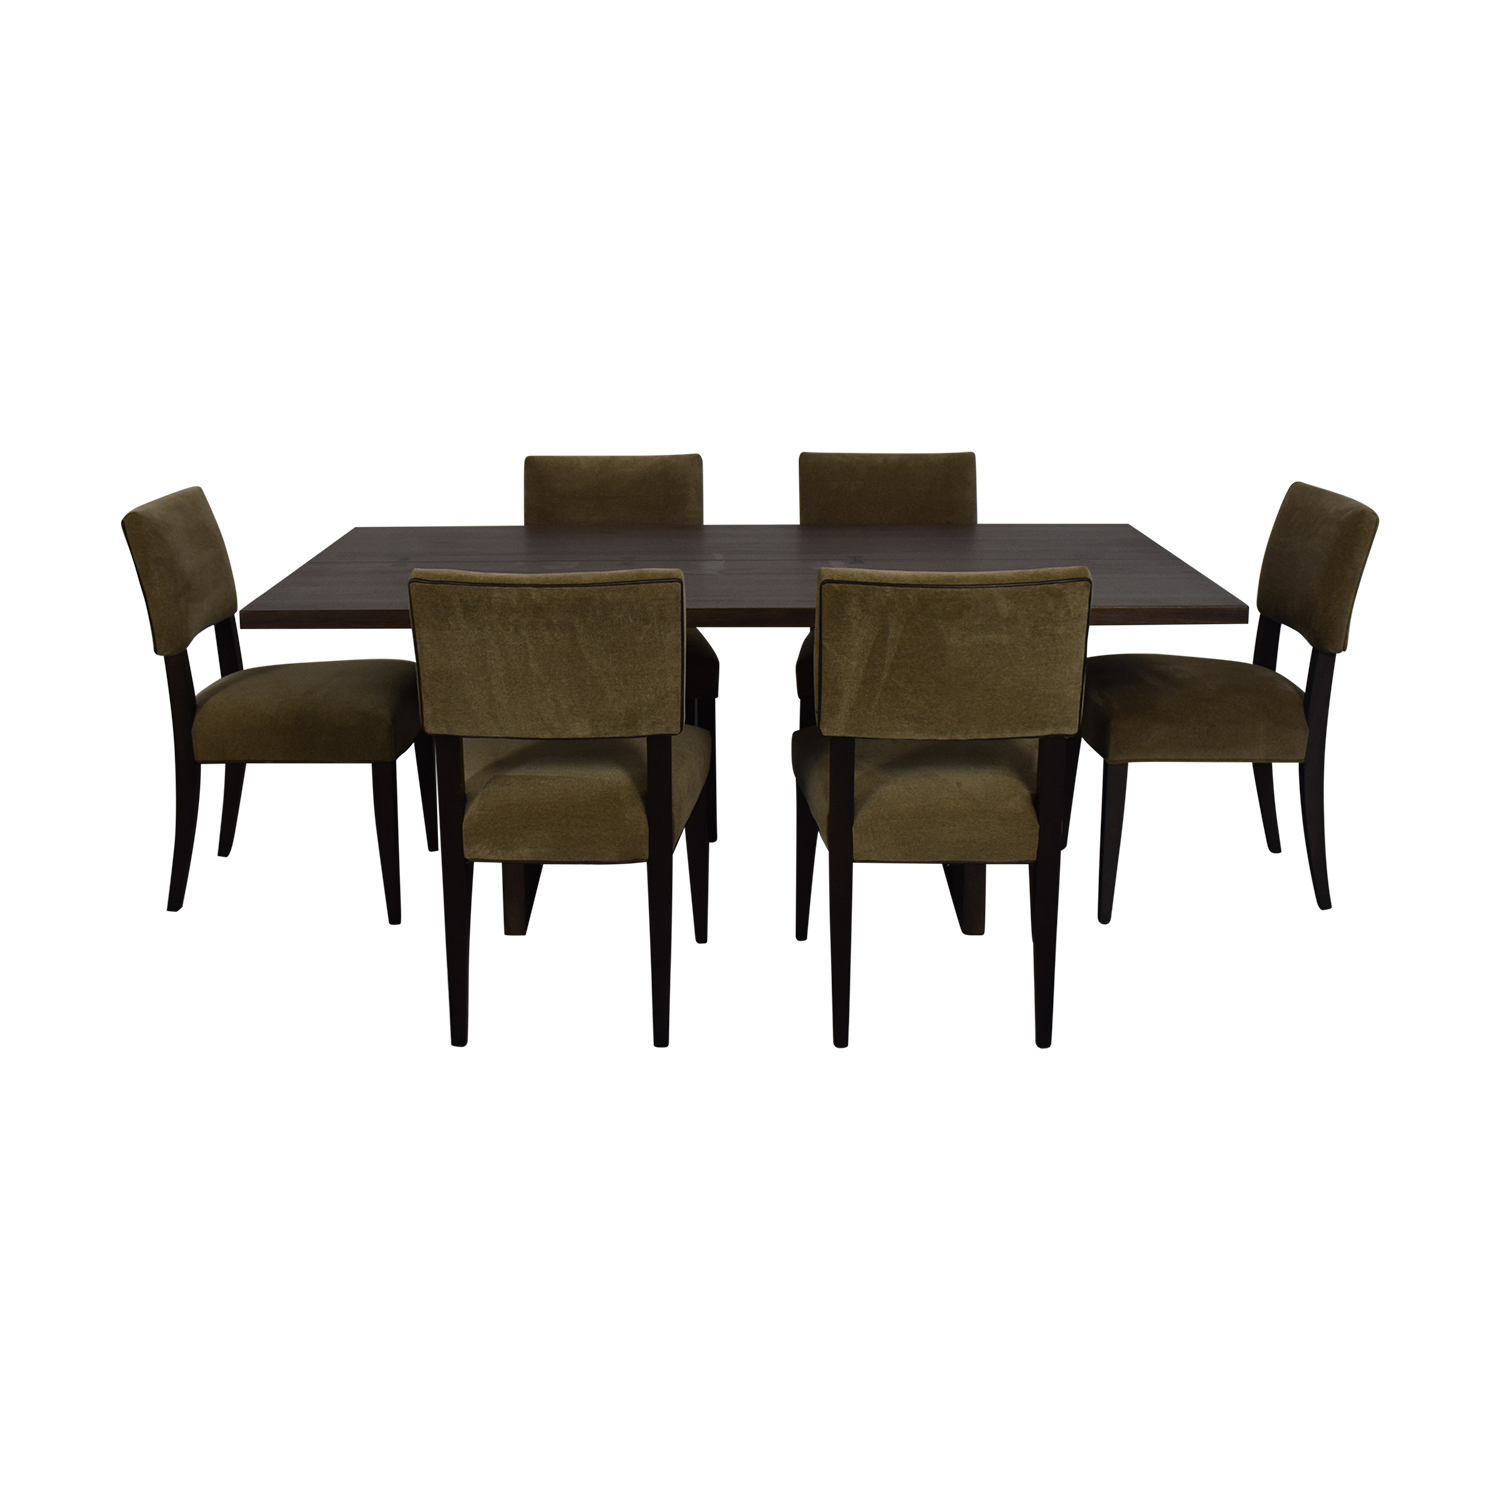 shop Crate & Barrel Monarch Dining Table and Cody Dining Chairs Crate & Barrel Dining Sets